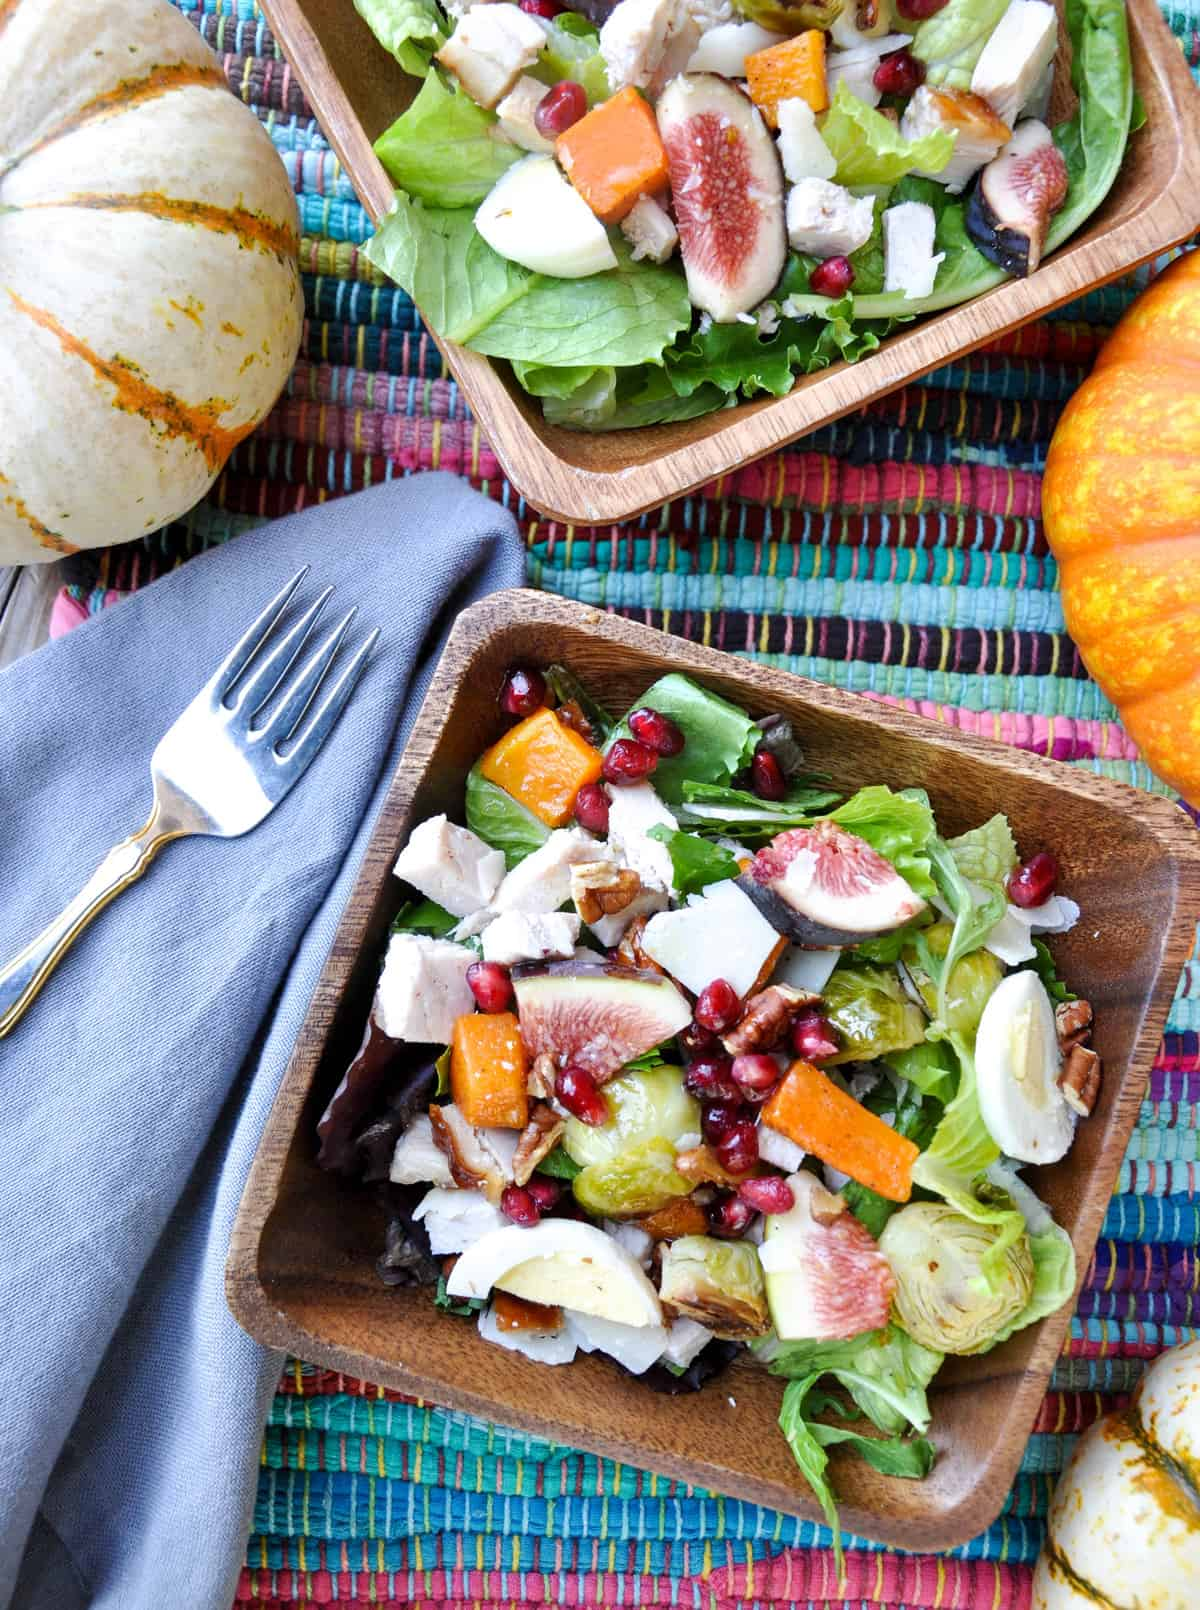 Thanksgiving Surplus Salad. Use all those scrumptious leftovers in a salad the next day!